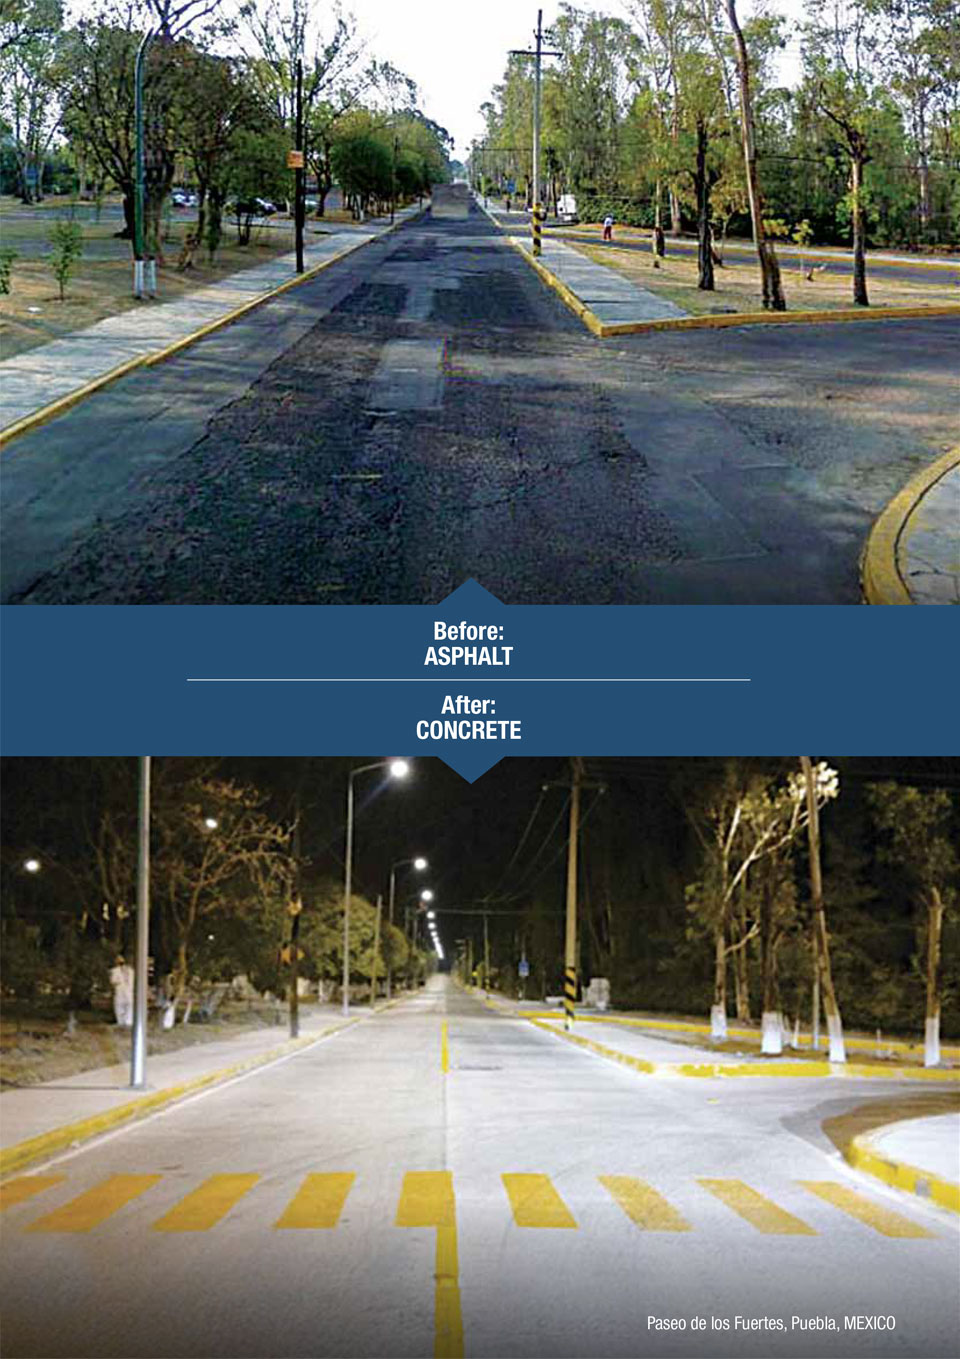 the image shows a before and after of a road using asphalt and then concrete